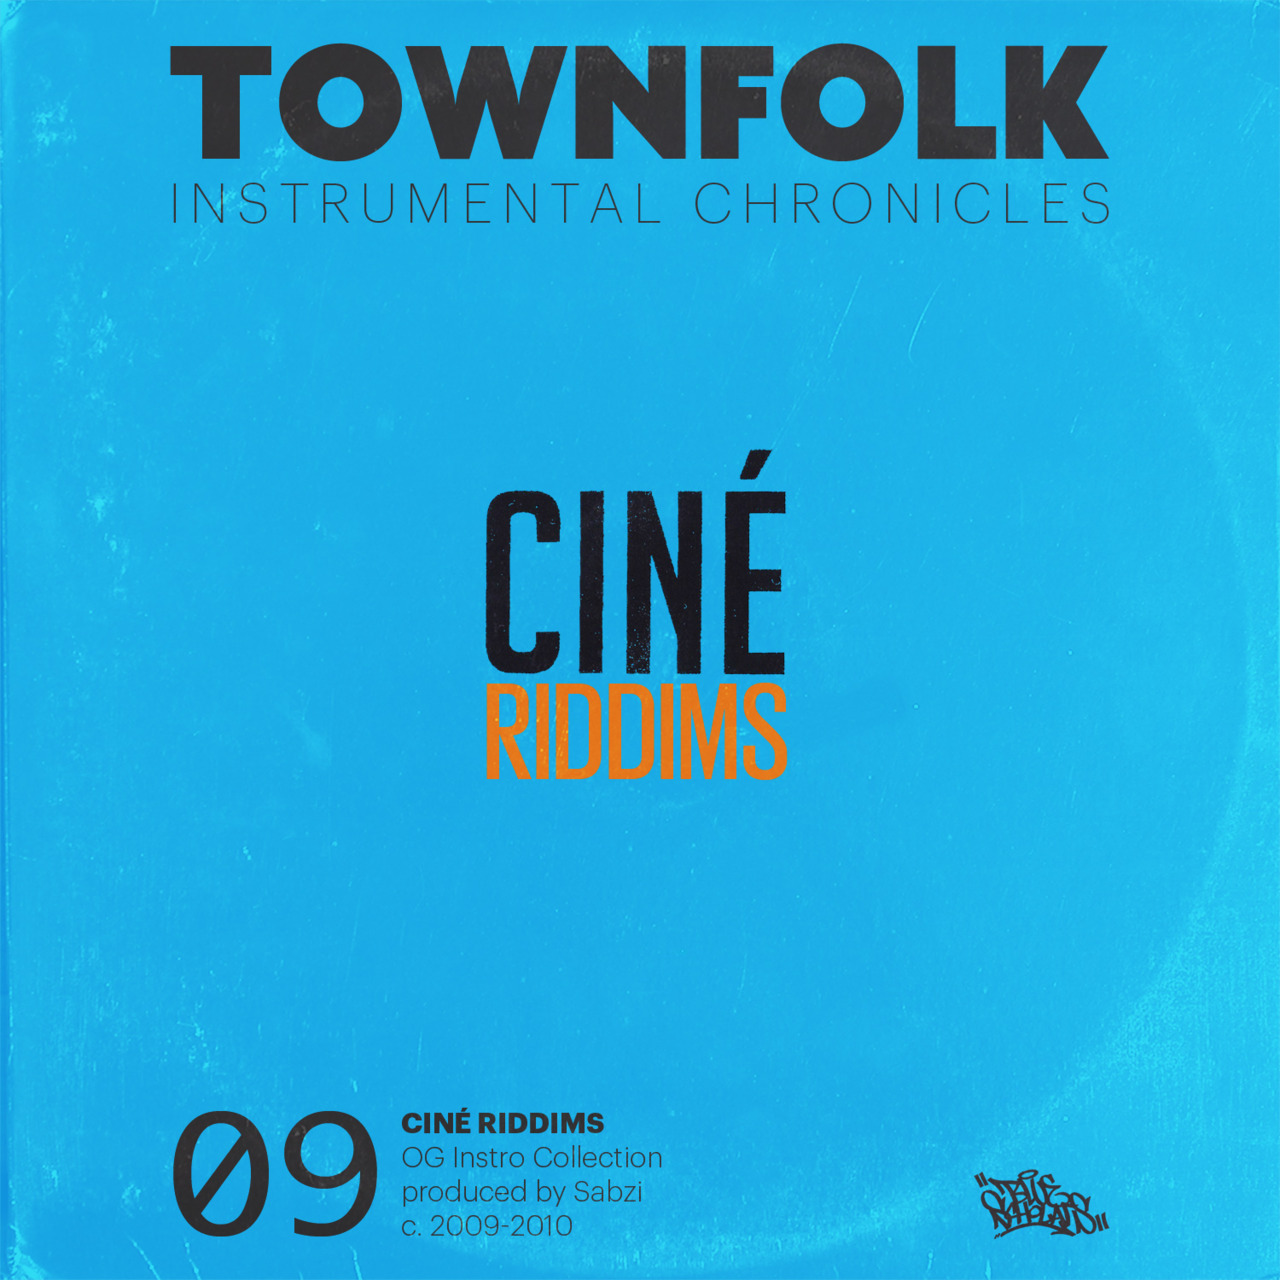 Get the CINÉ RIDDIMS  here .